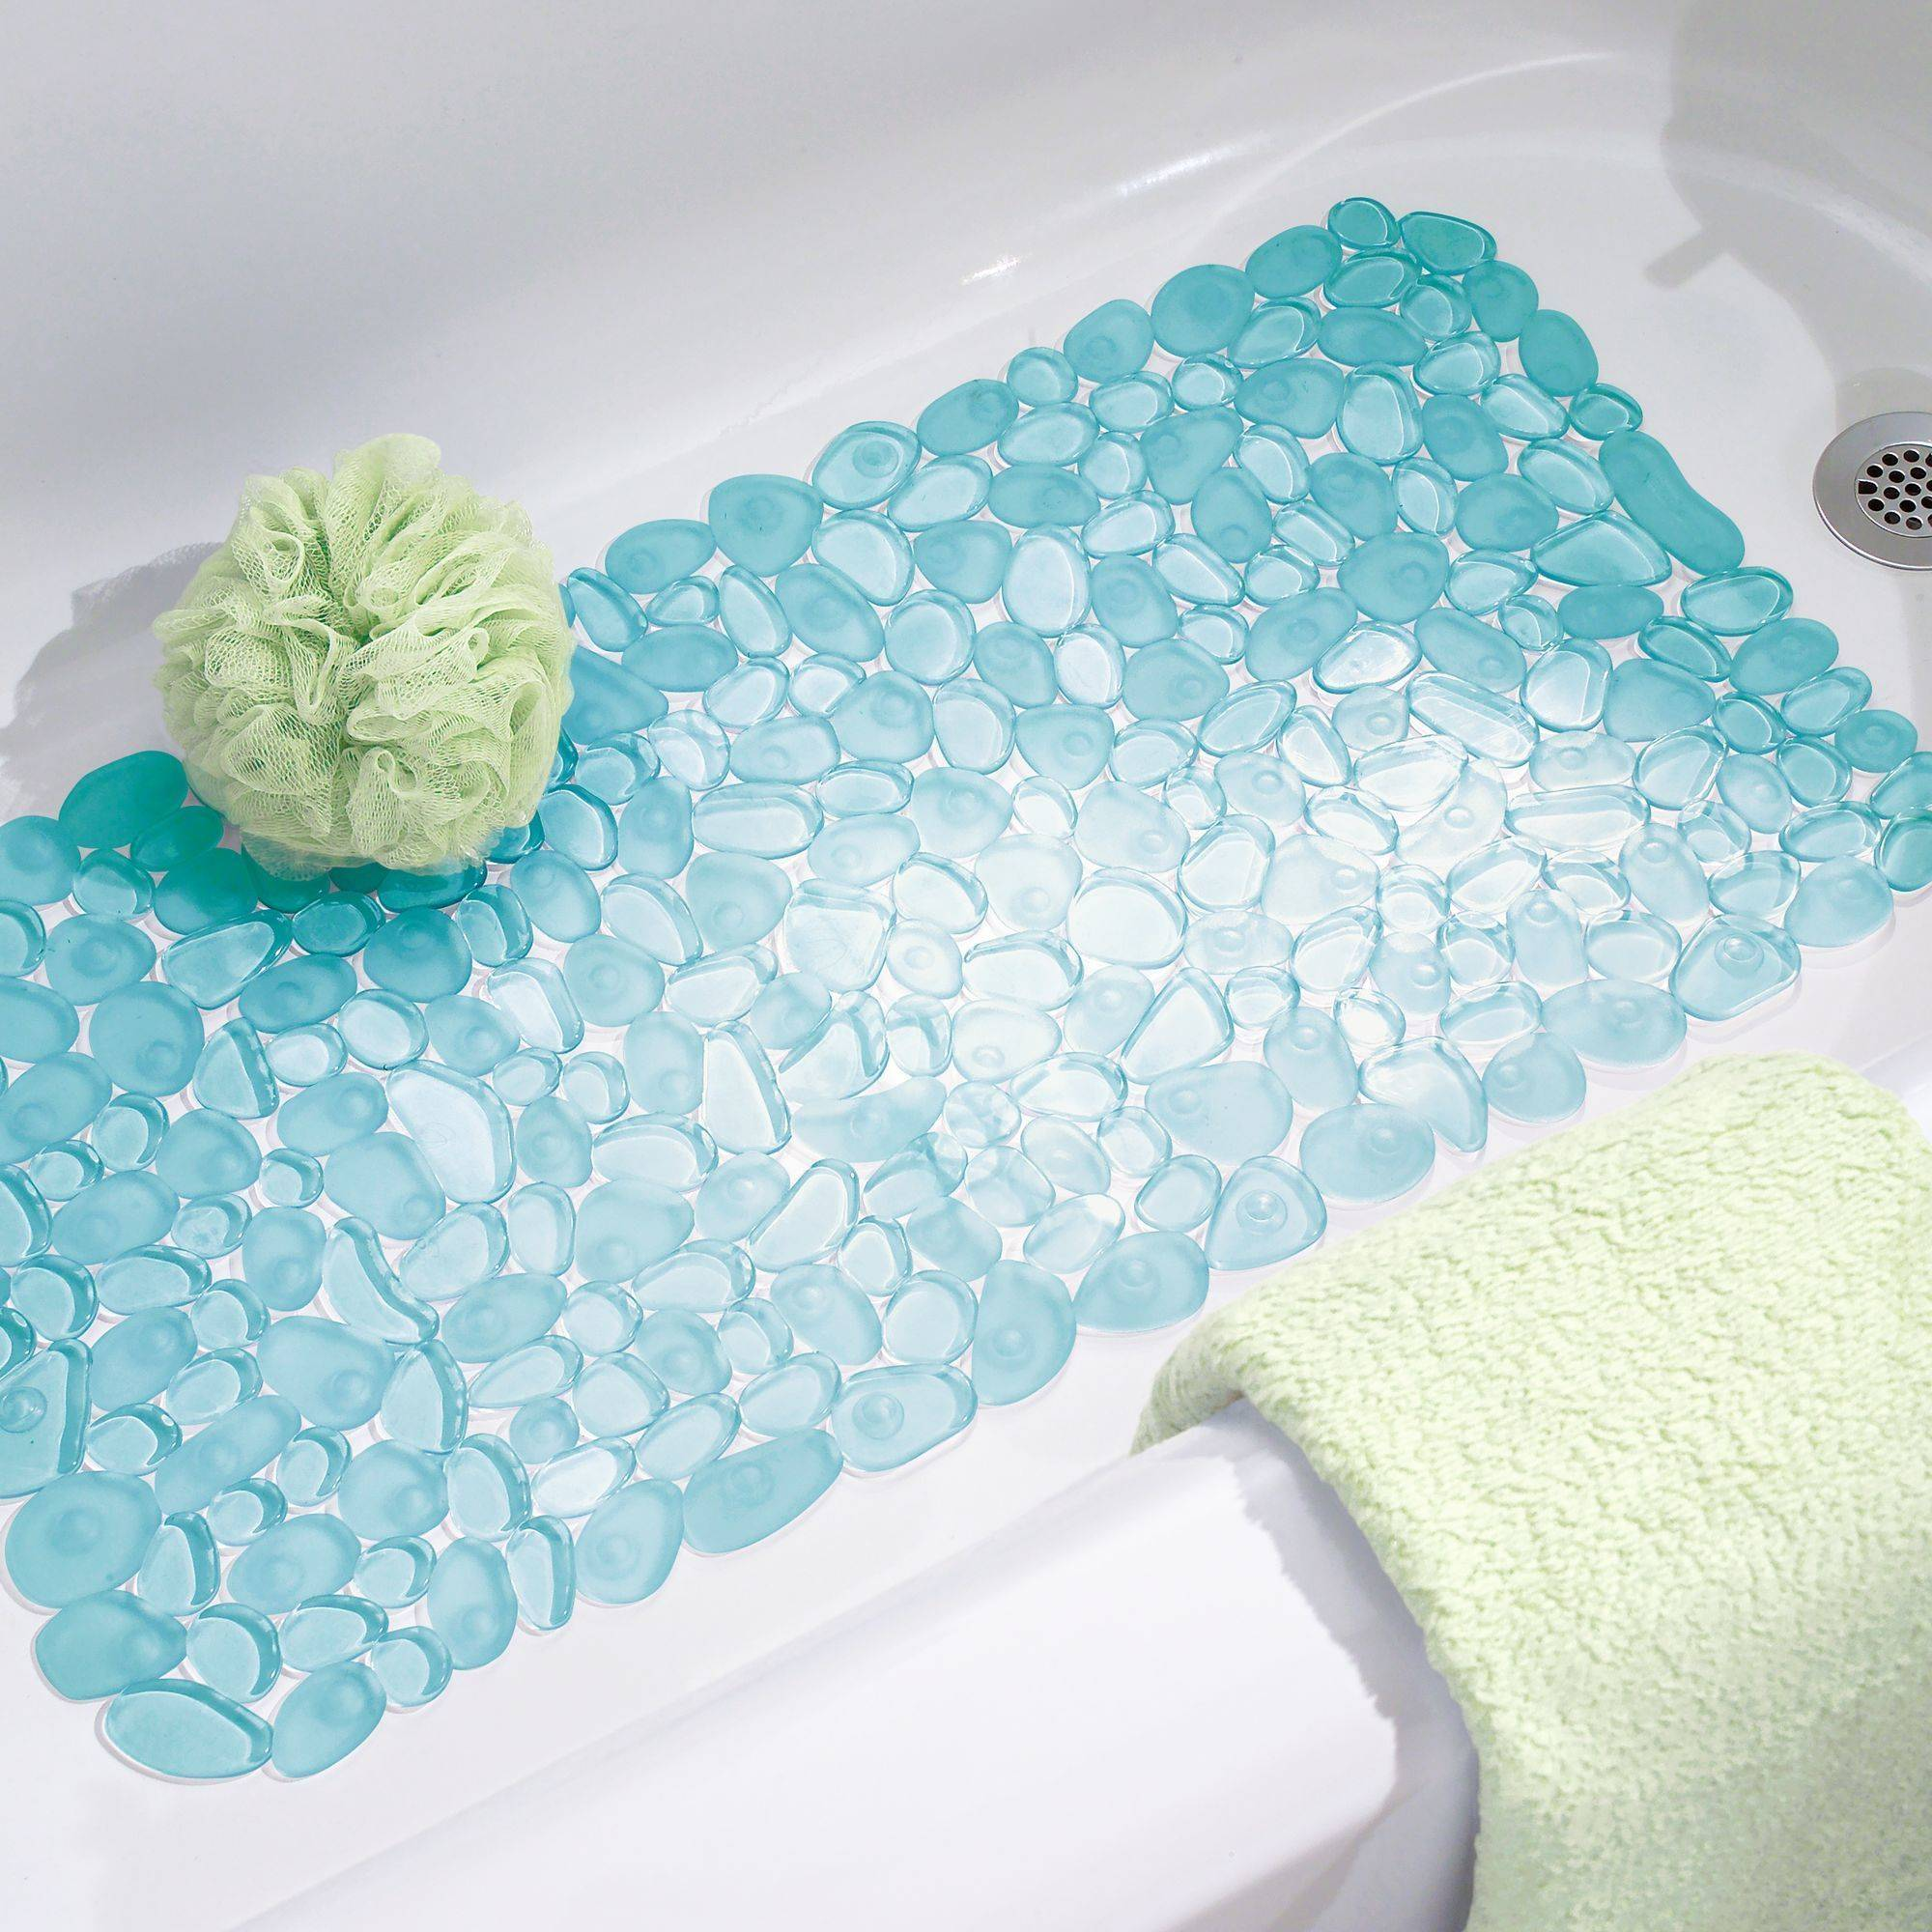 InterDesign Pebblz Bath Mat